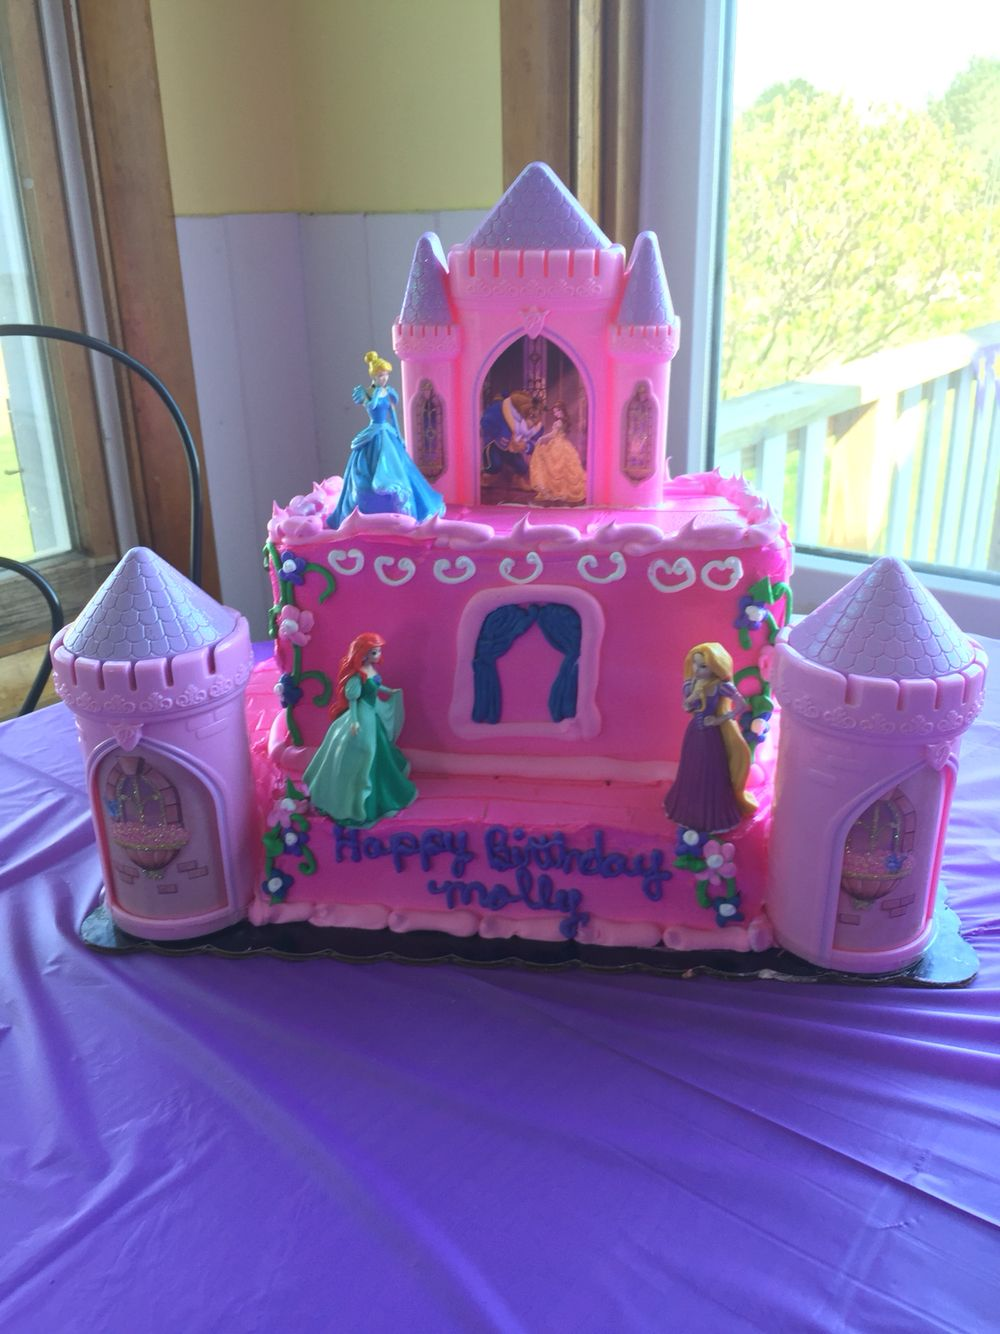 Remarkable Princess Cake From Meijer With Images Princess Birthday Cake Funny Birthday Cards Online Inifodamsfinfo